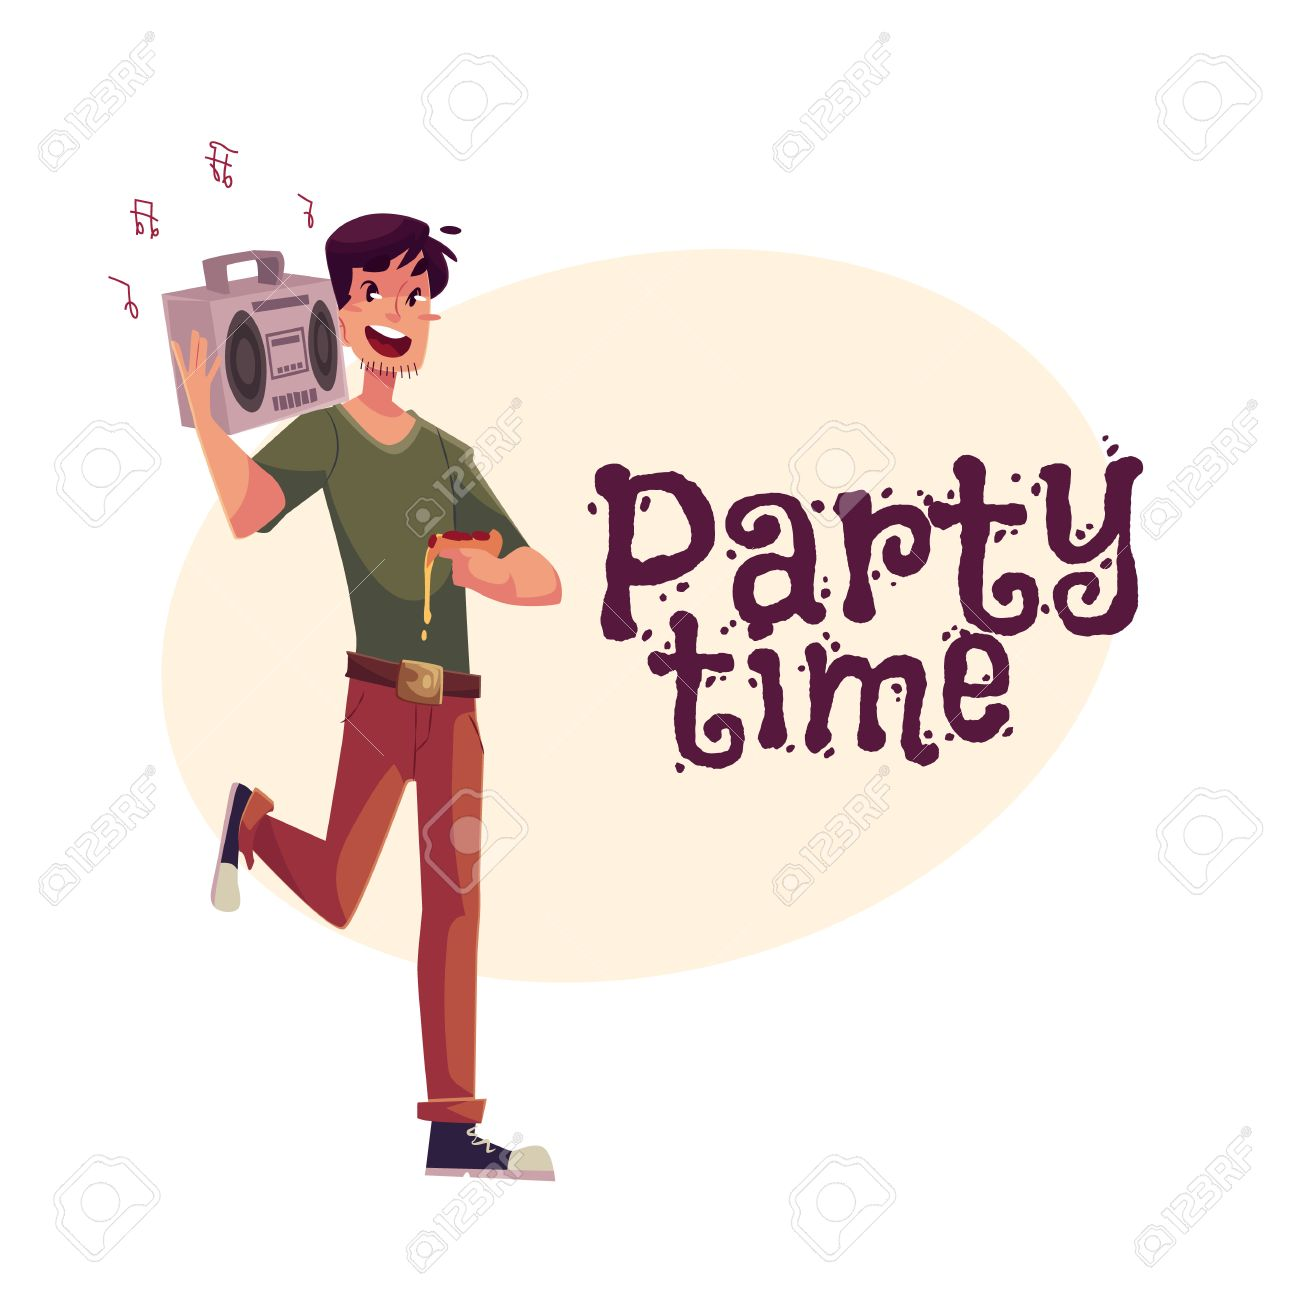 Young Man Dancing At The Party With Tape Recorder On His Shoulder And Pizza In Hand Cartoon Vector Illustration Greeting Card Poster Banner Design For